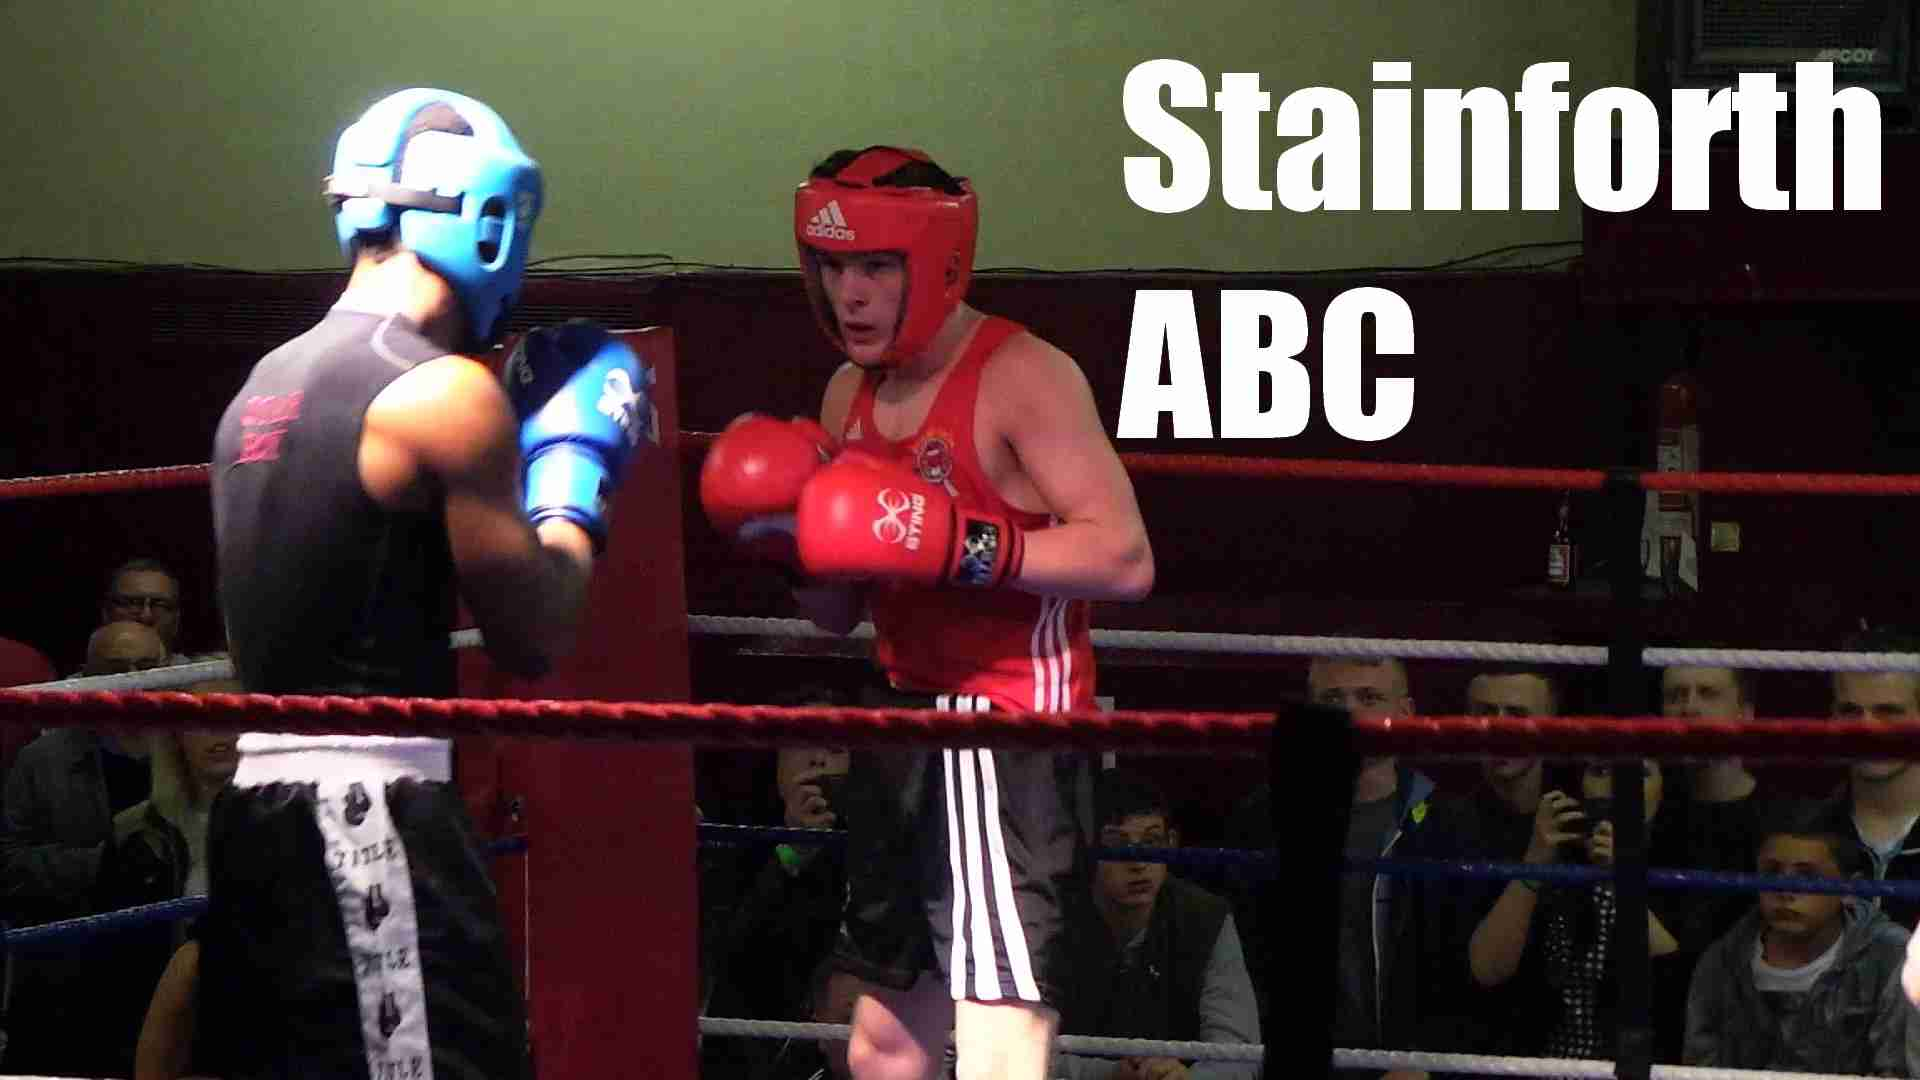 'Terrible' Tim Champions Stainforth ABC